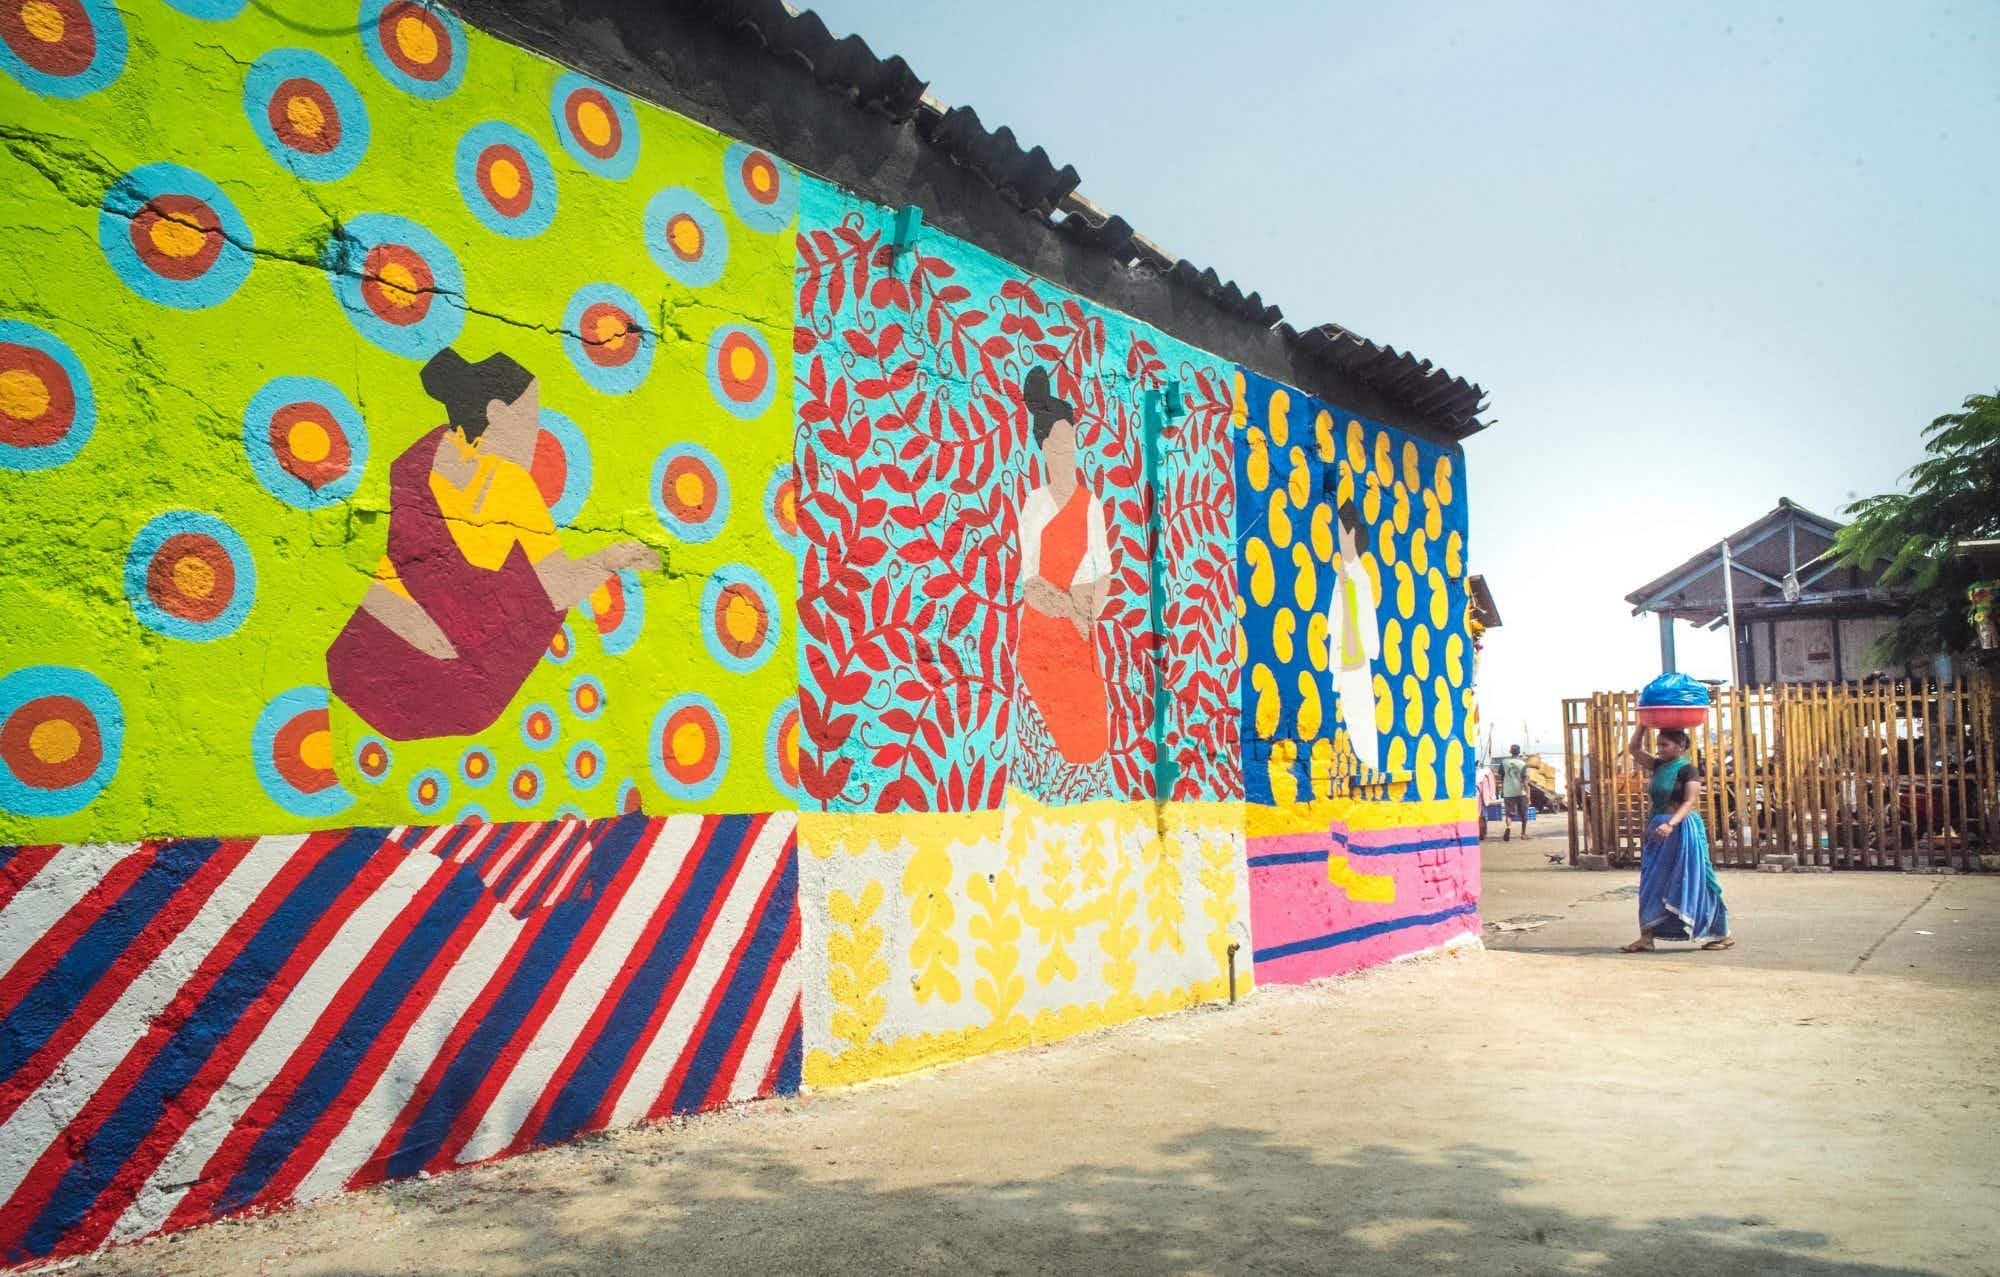 An old fishing area in Mumbai is getting an artistic makeover